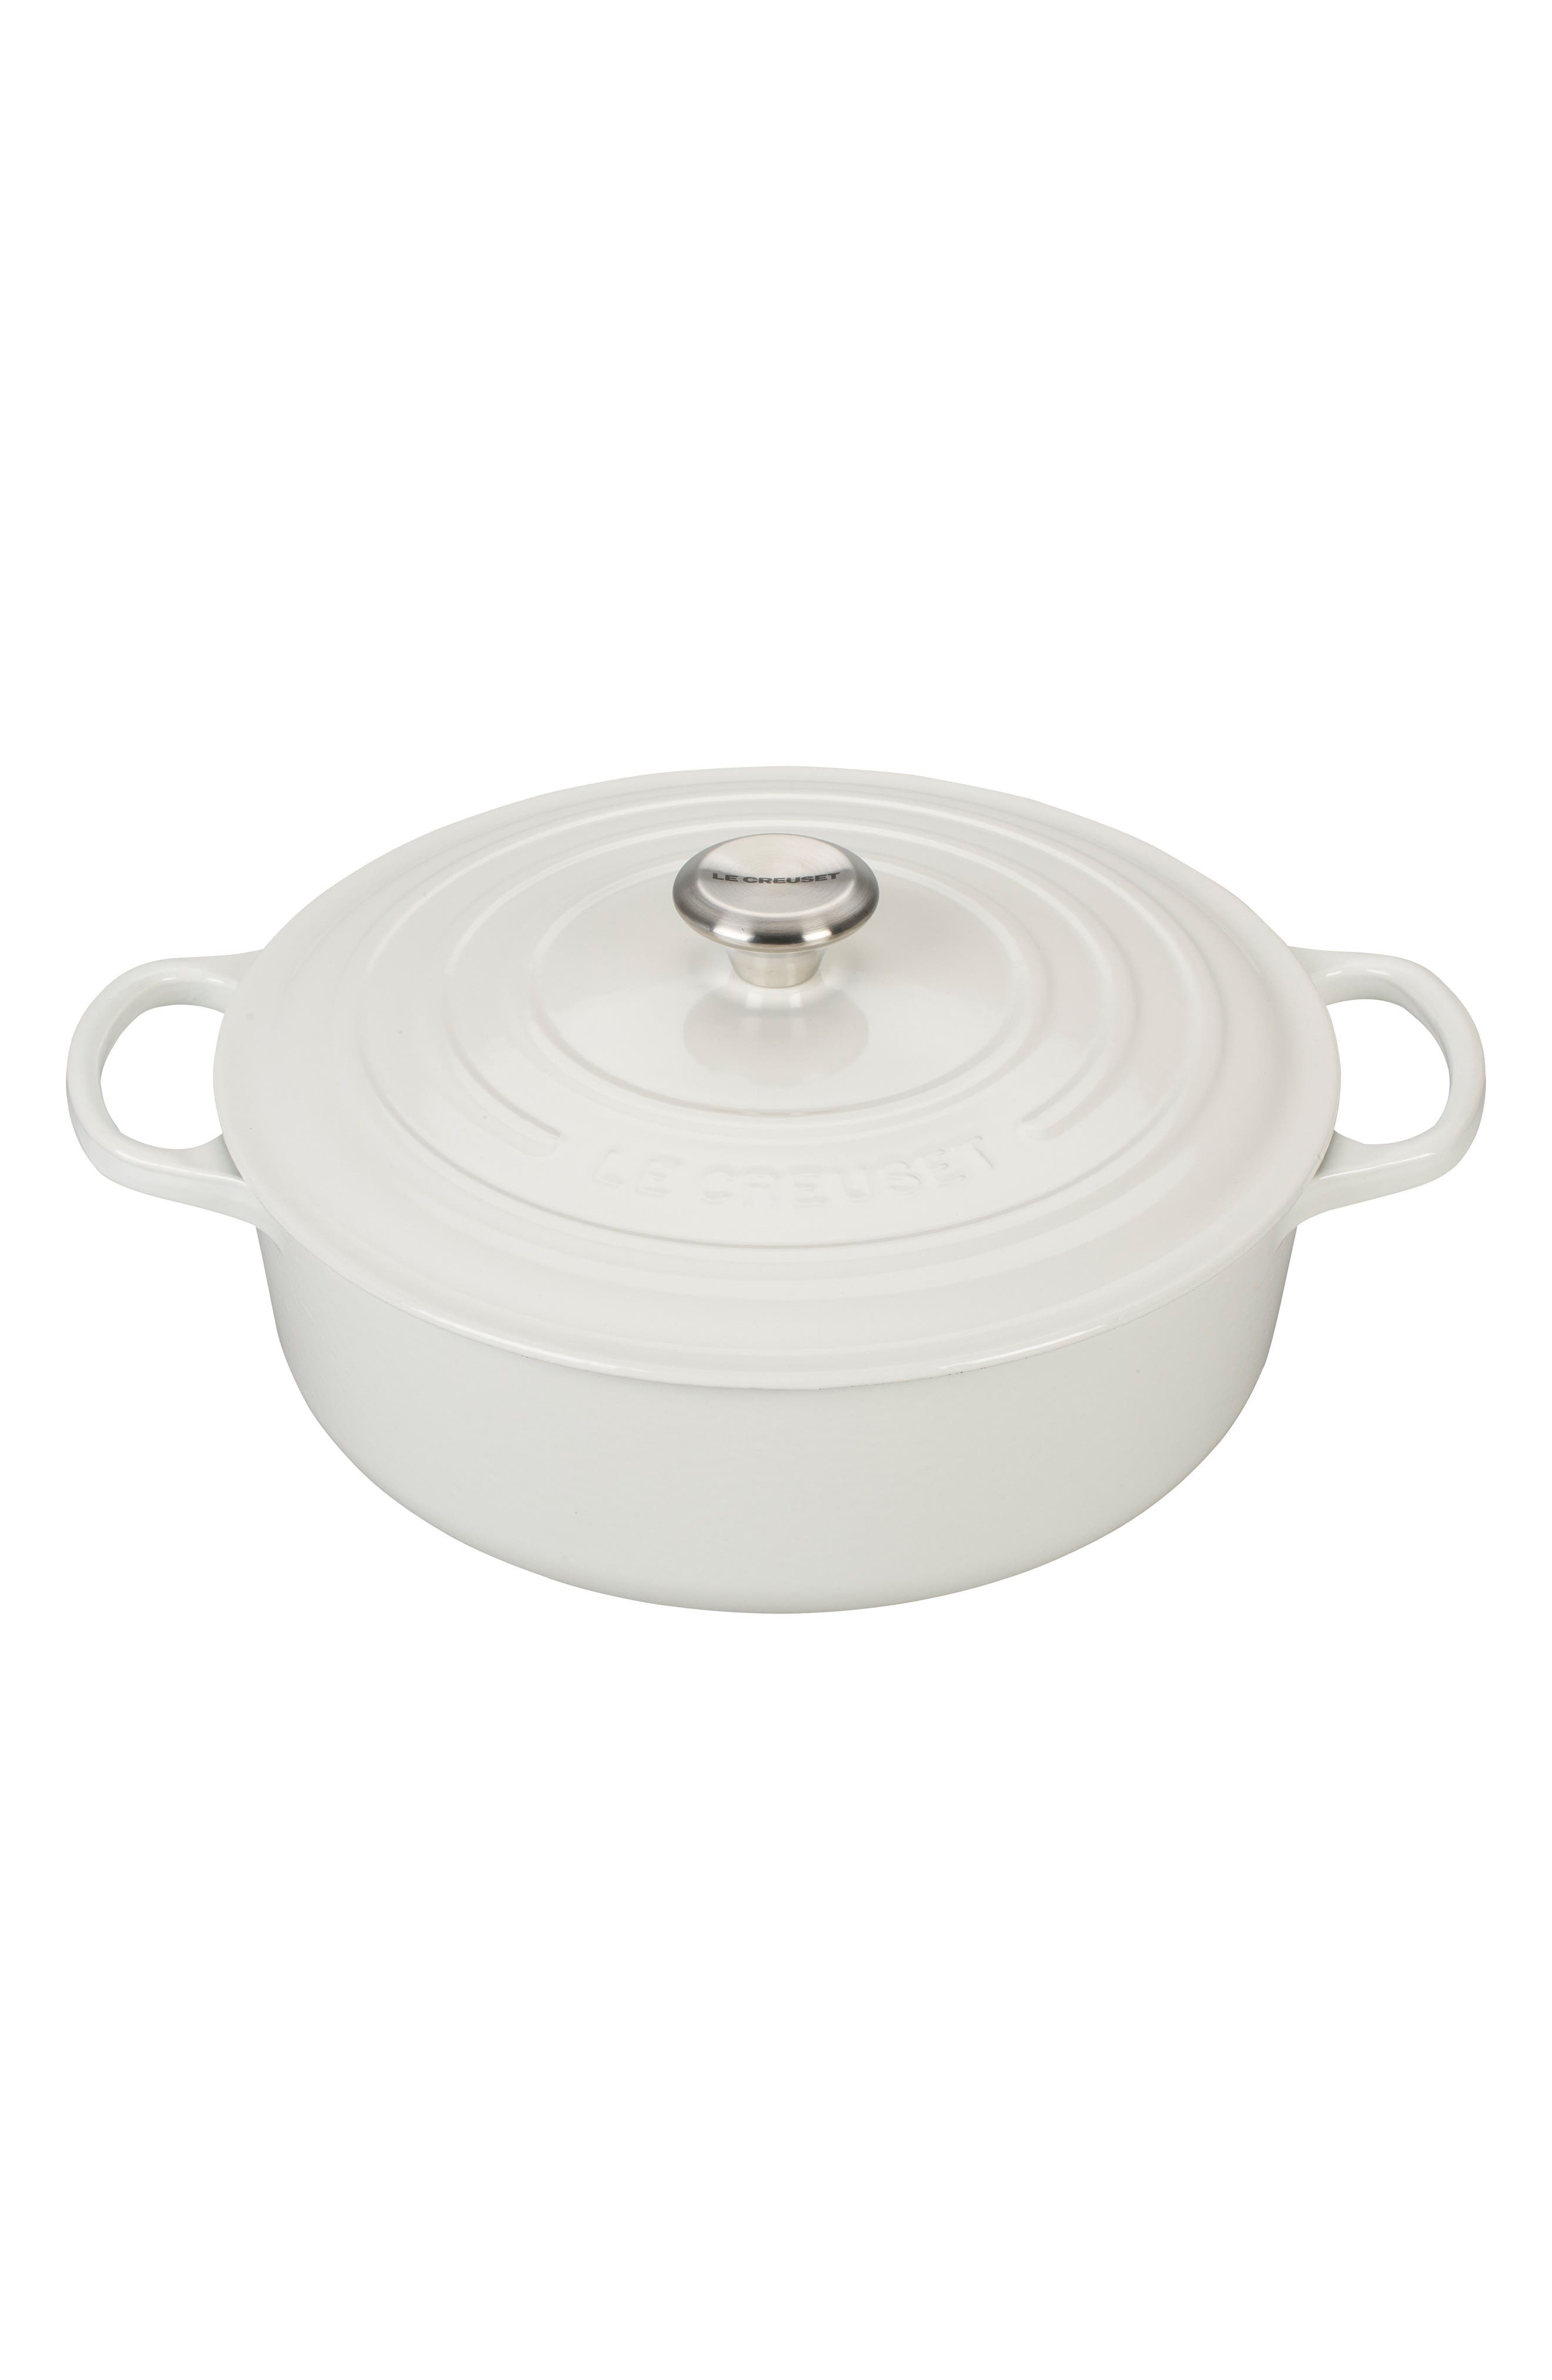 Signature 6 3/4-Quart Round Wide French/Dutch Oven,                             Main thumbnail 1, color,                             100